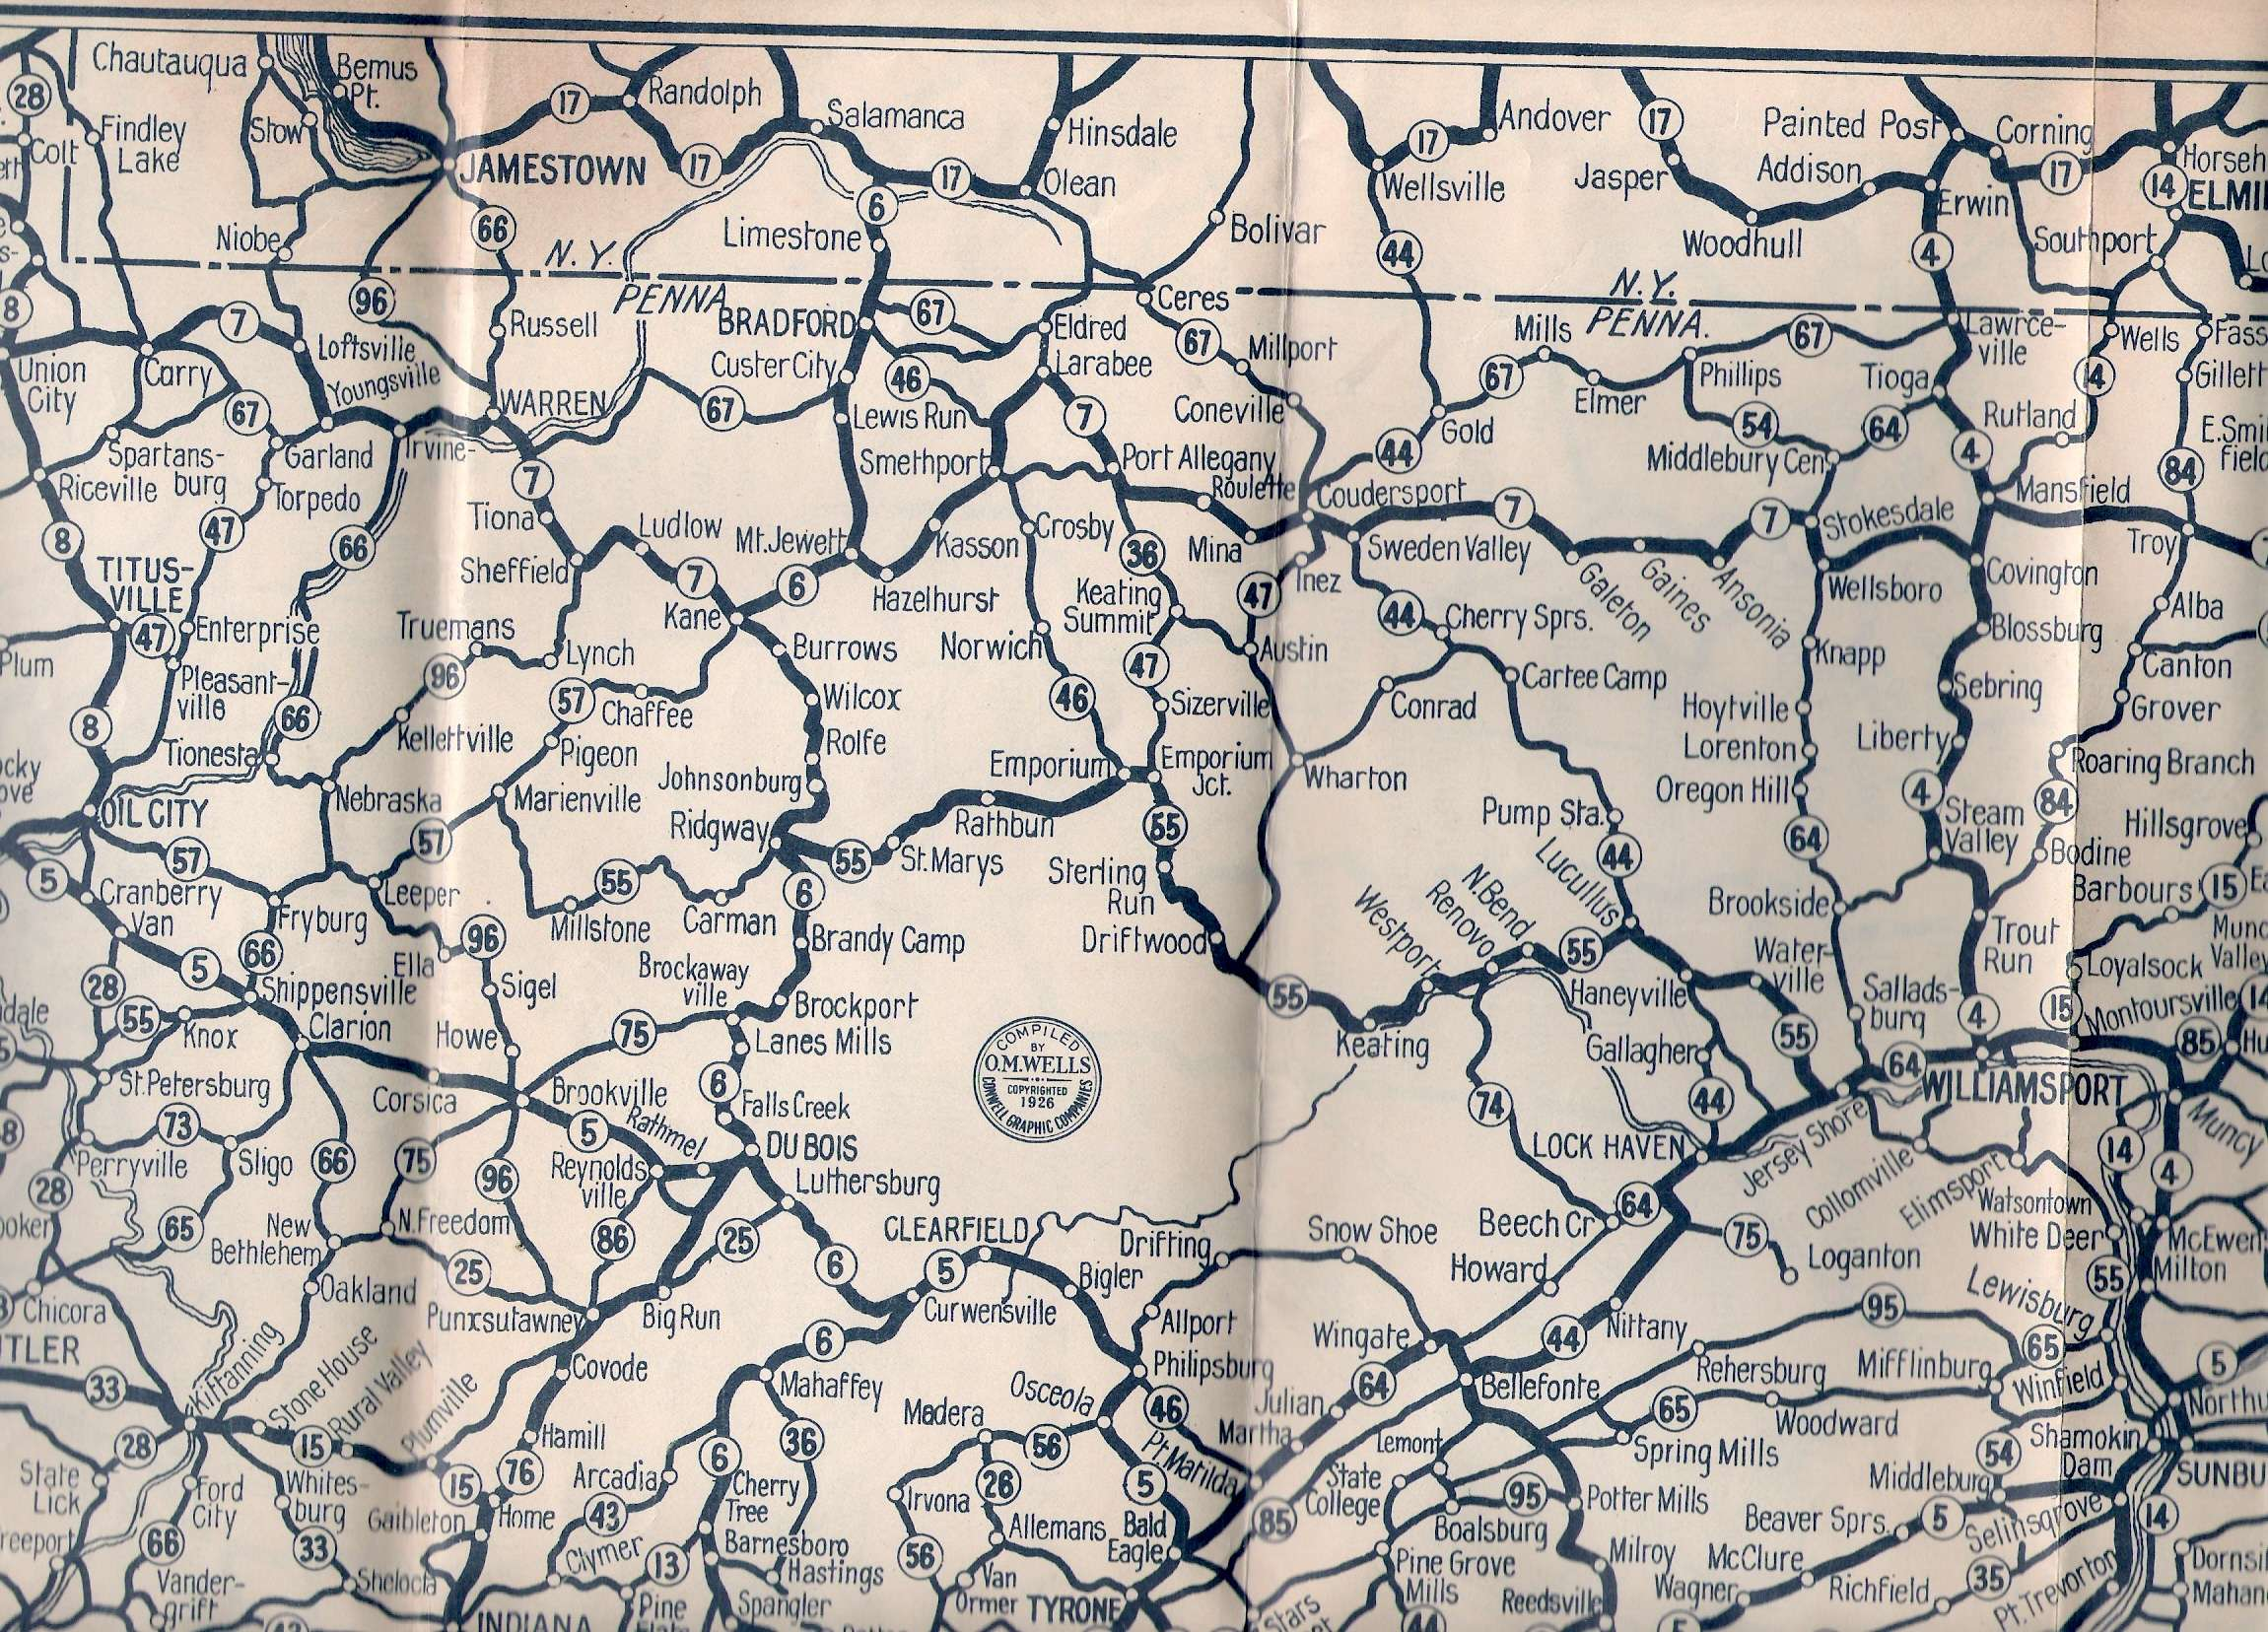 S Oil Company Road Maps Of Pennsylvania - Us pipeline 1950 map